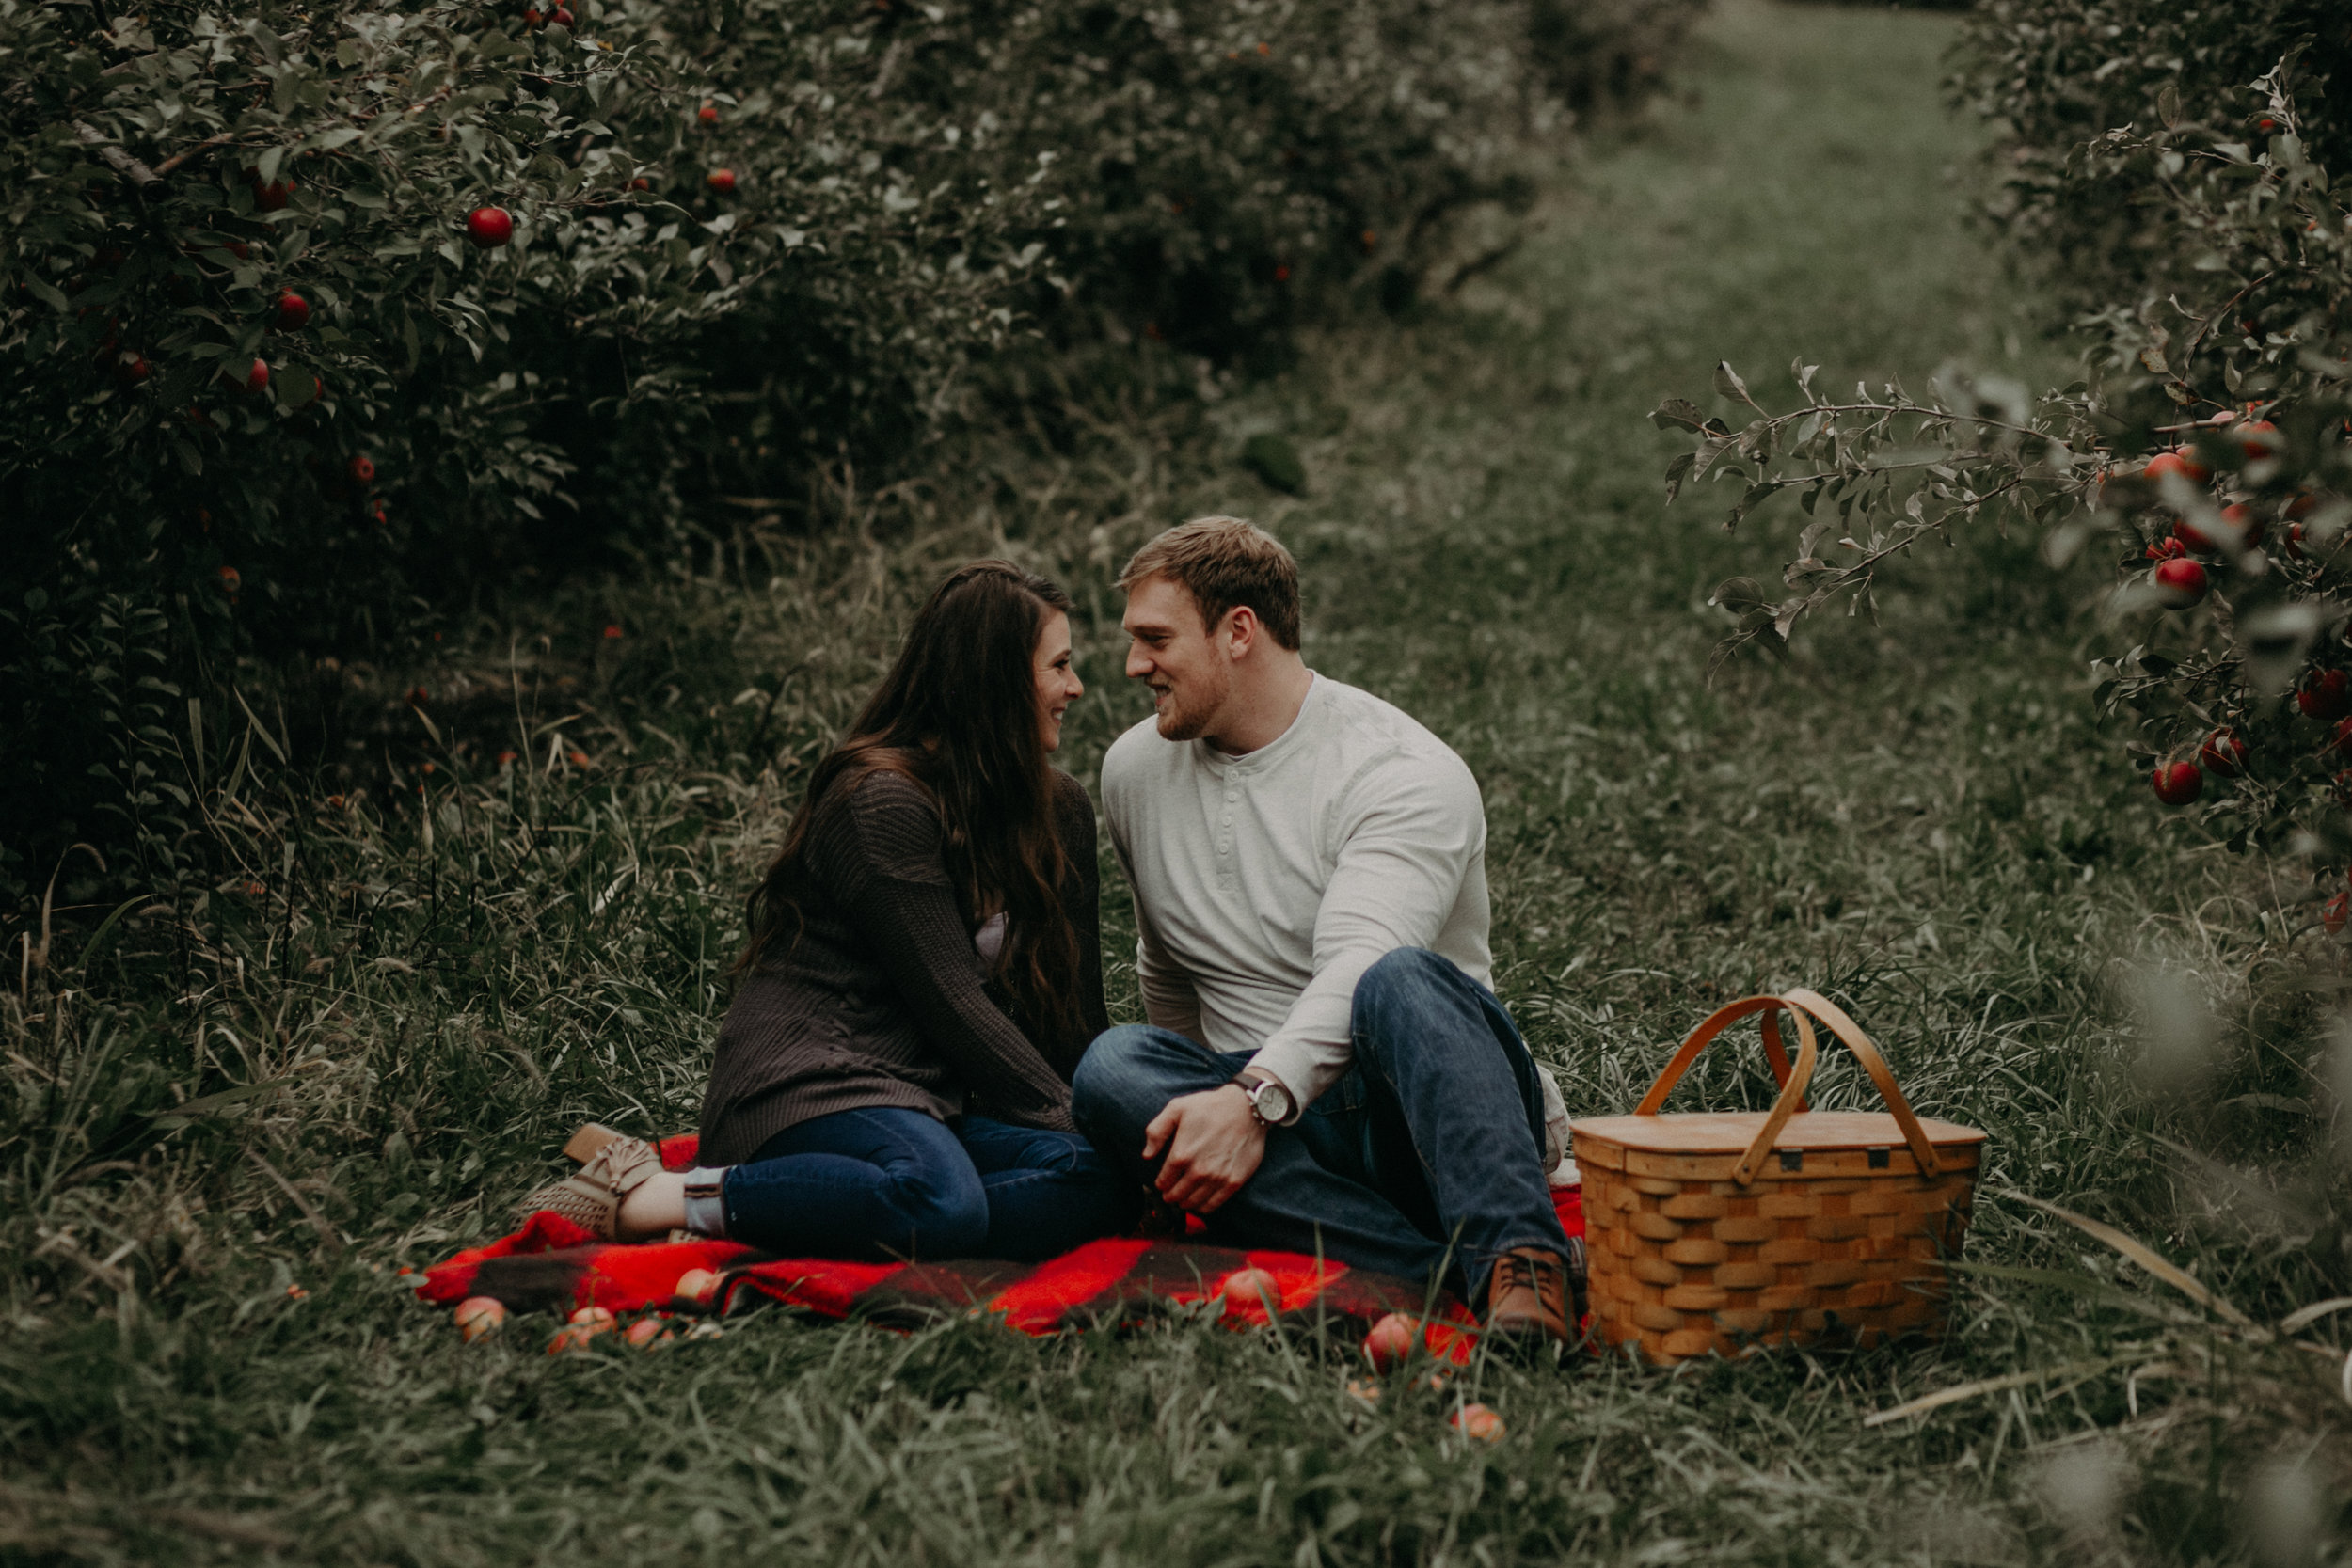 An engaged couple sits on a plaid blanket snuggling at Whistling Well Farm in Hastings MN